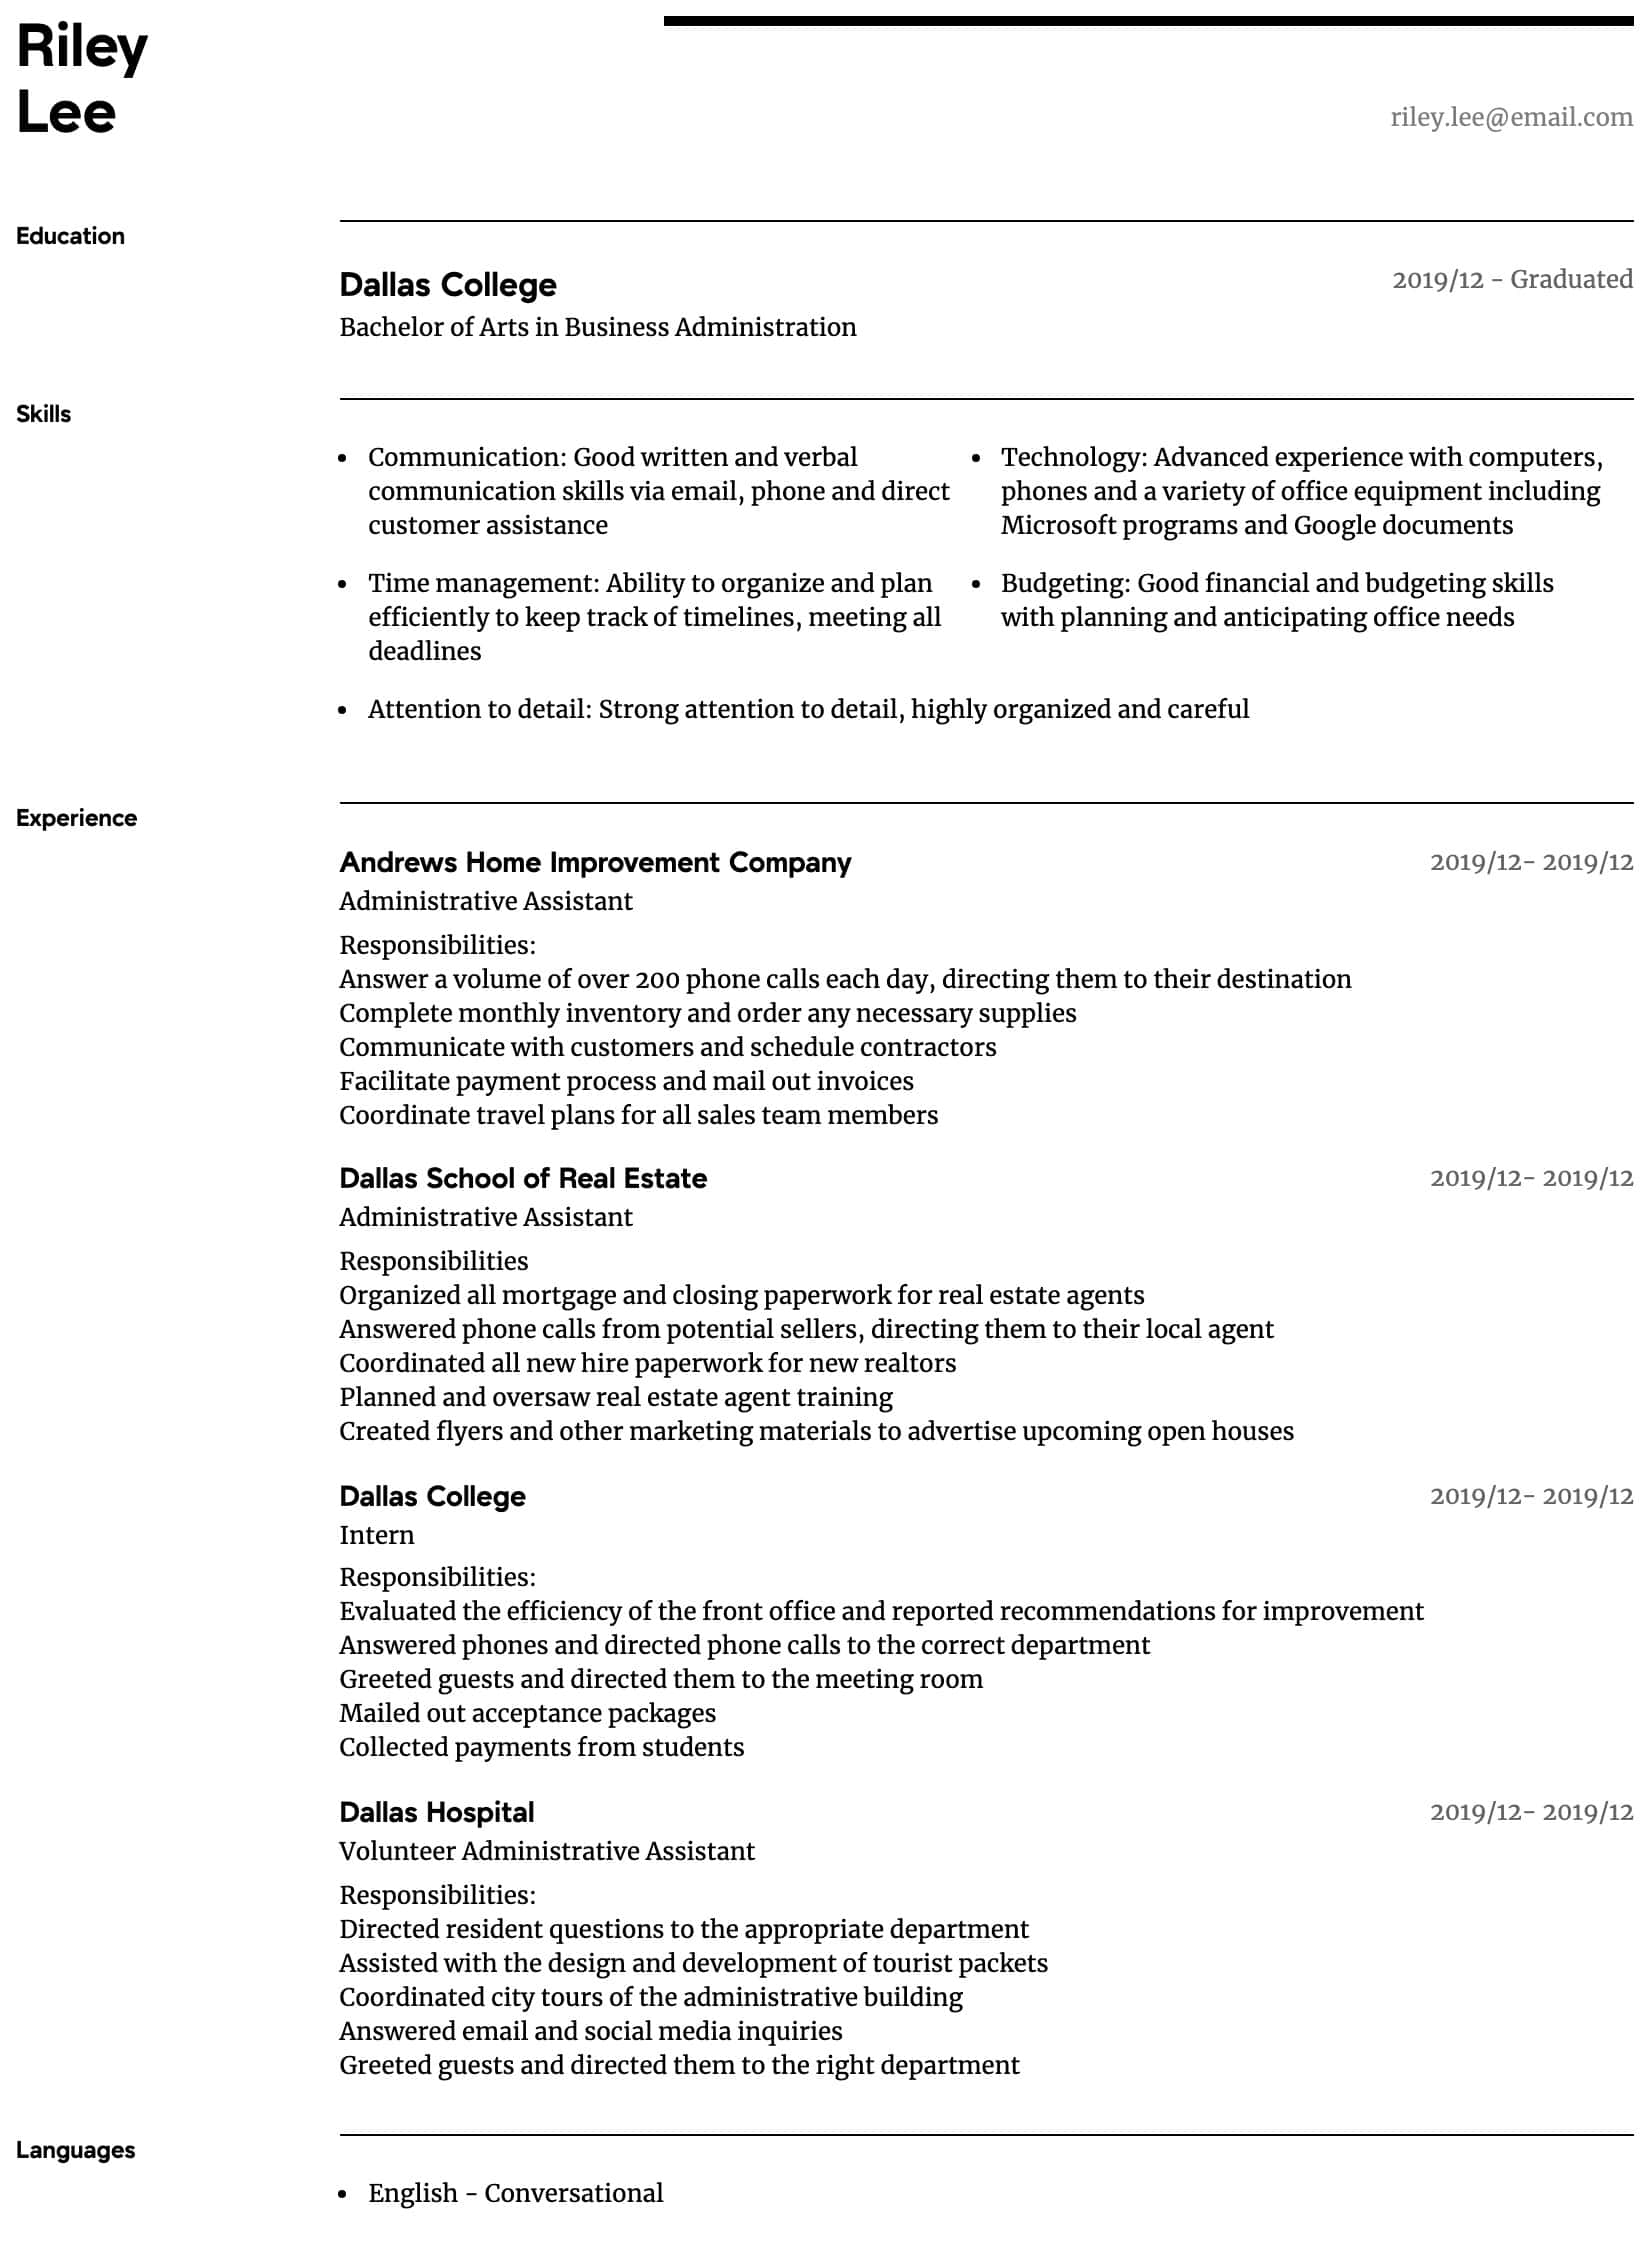 administrative assistant resume samples all experience levels template intermediate basic Resume Administrative Assistant Resume Template